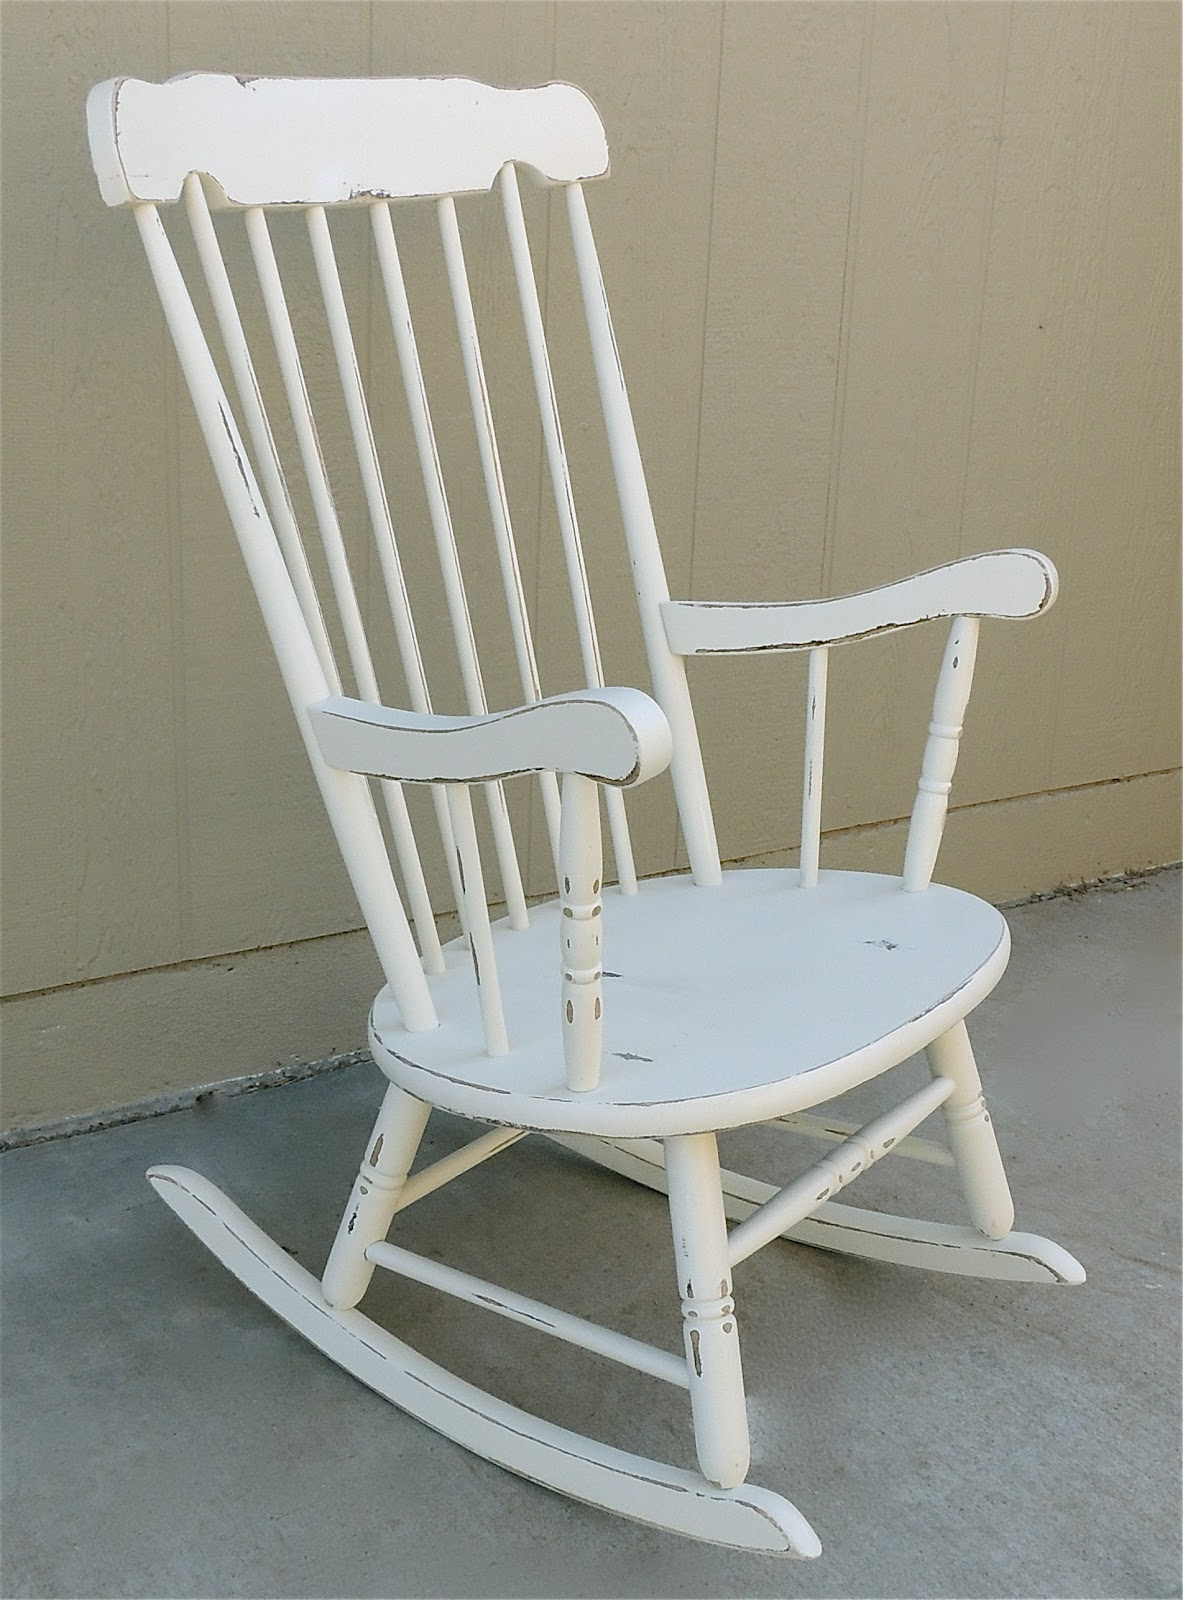 Shabby Chic Chair Sand Bag The Backyard Boutique By Five To Nine Furnishings